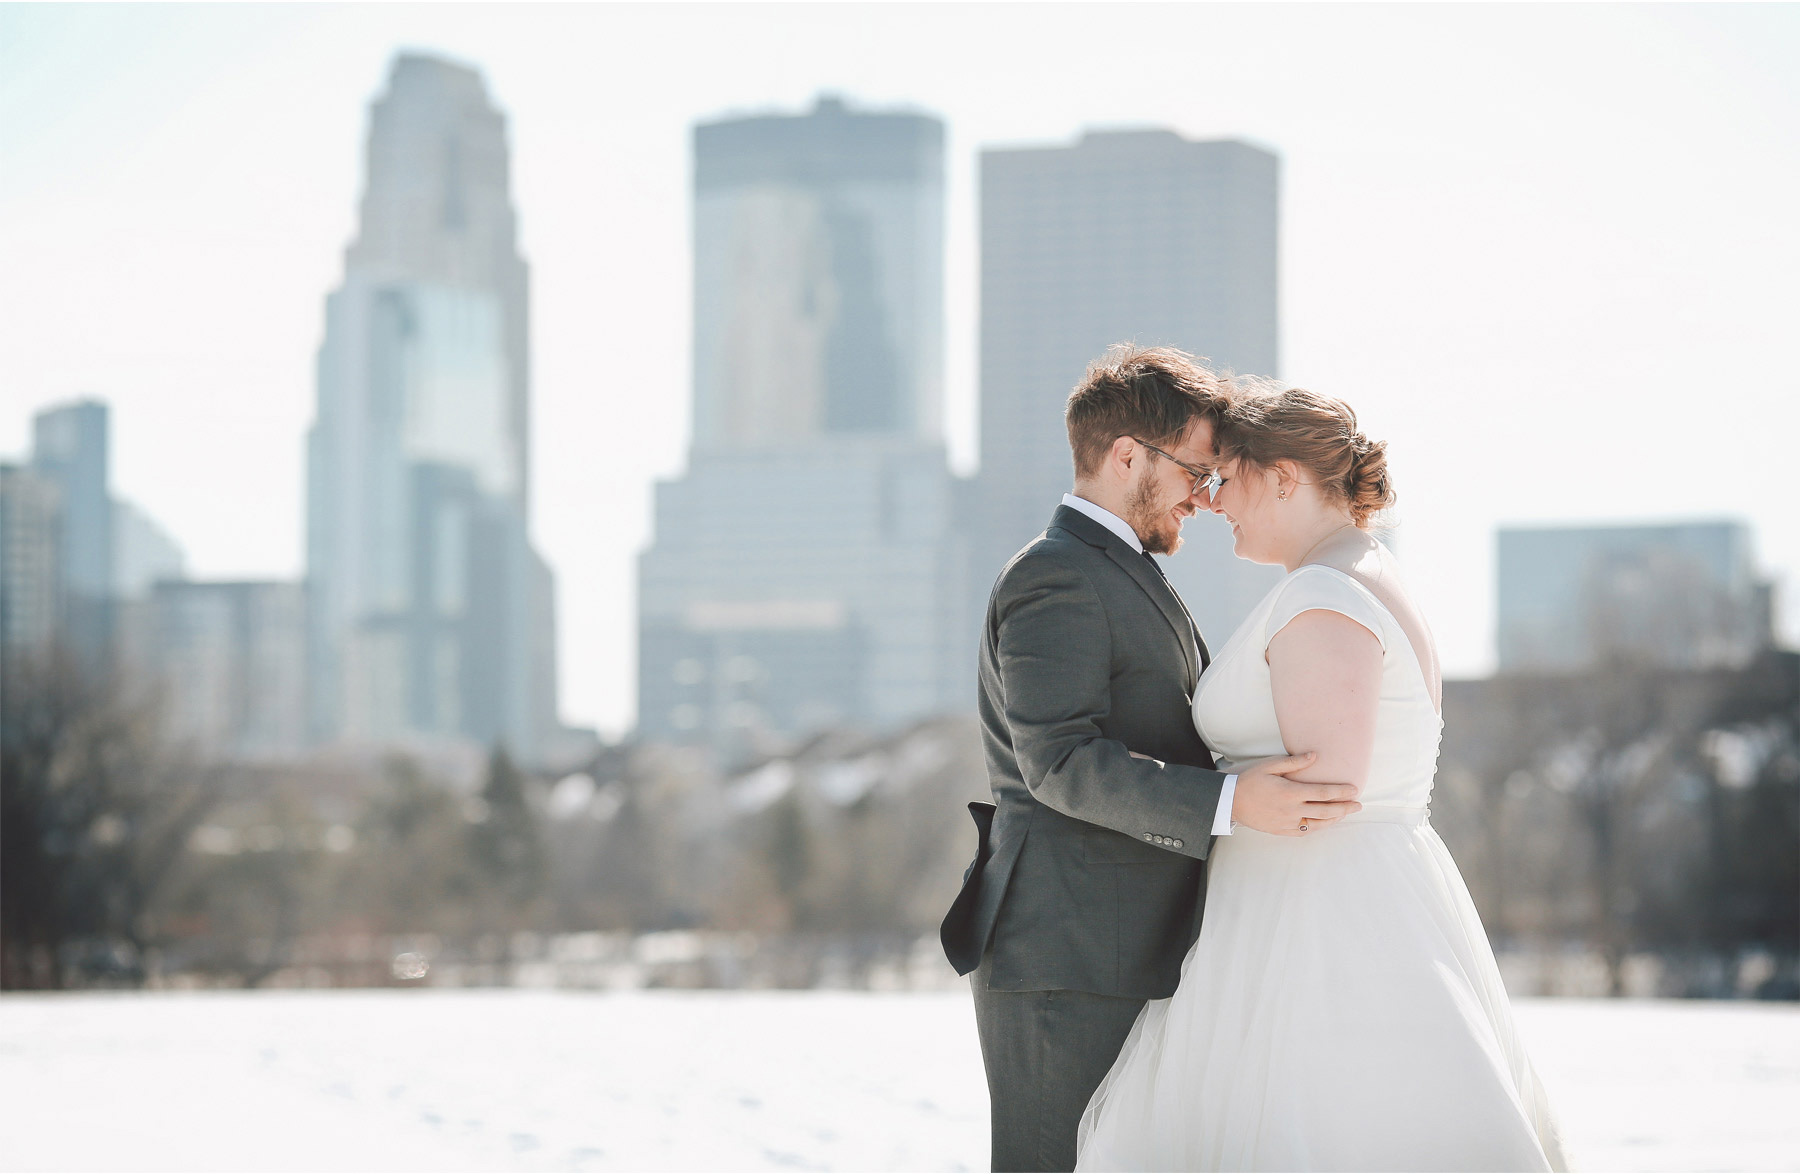 11-Minneapolis-Wedding-Photography-by-Vick-Skyline-Downtown-Winter-Wedding-Libby-and-Nathan.jpg